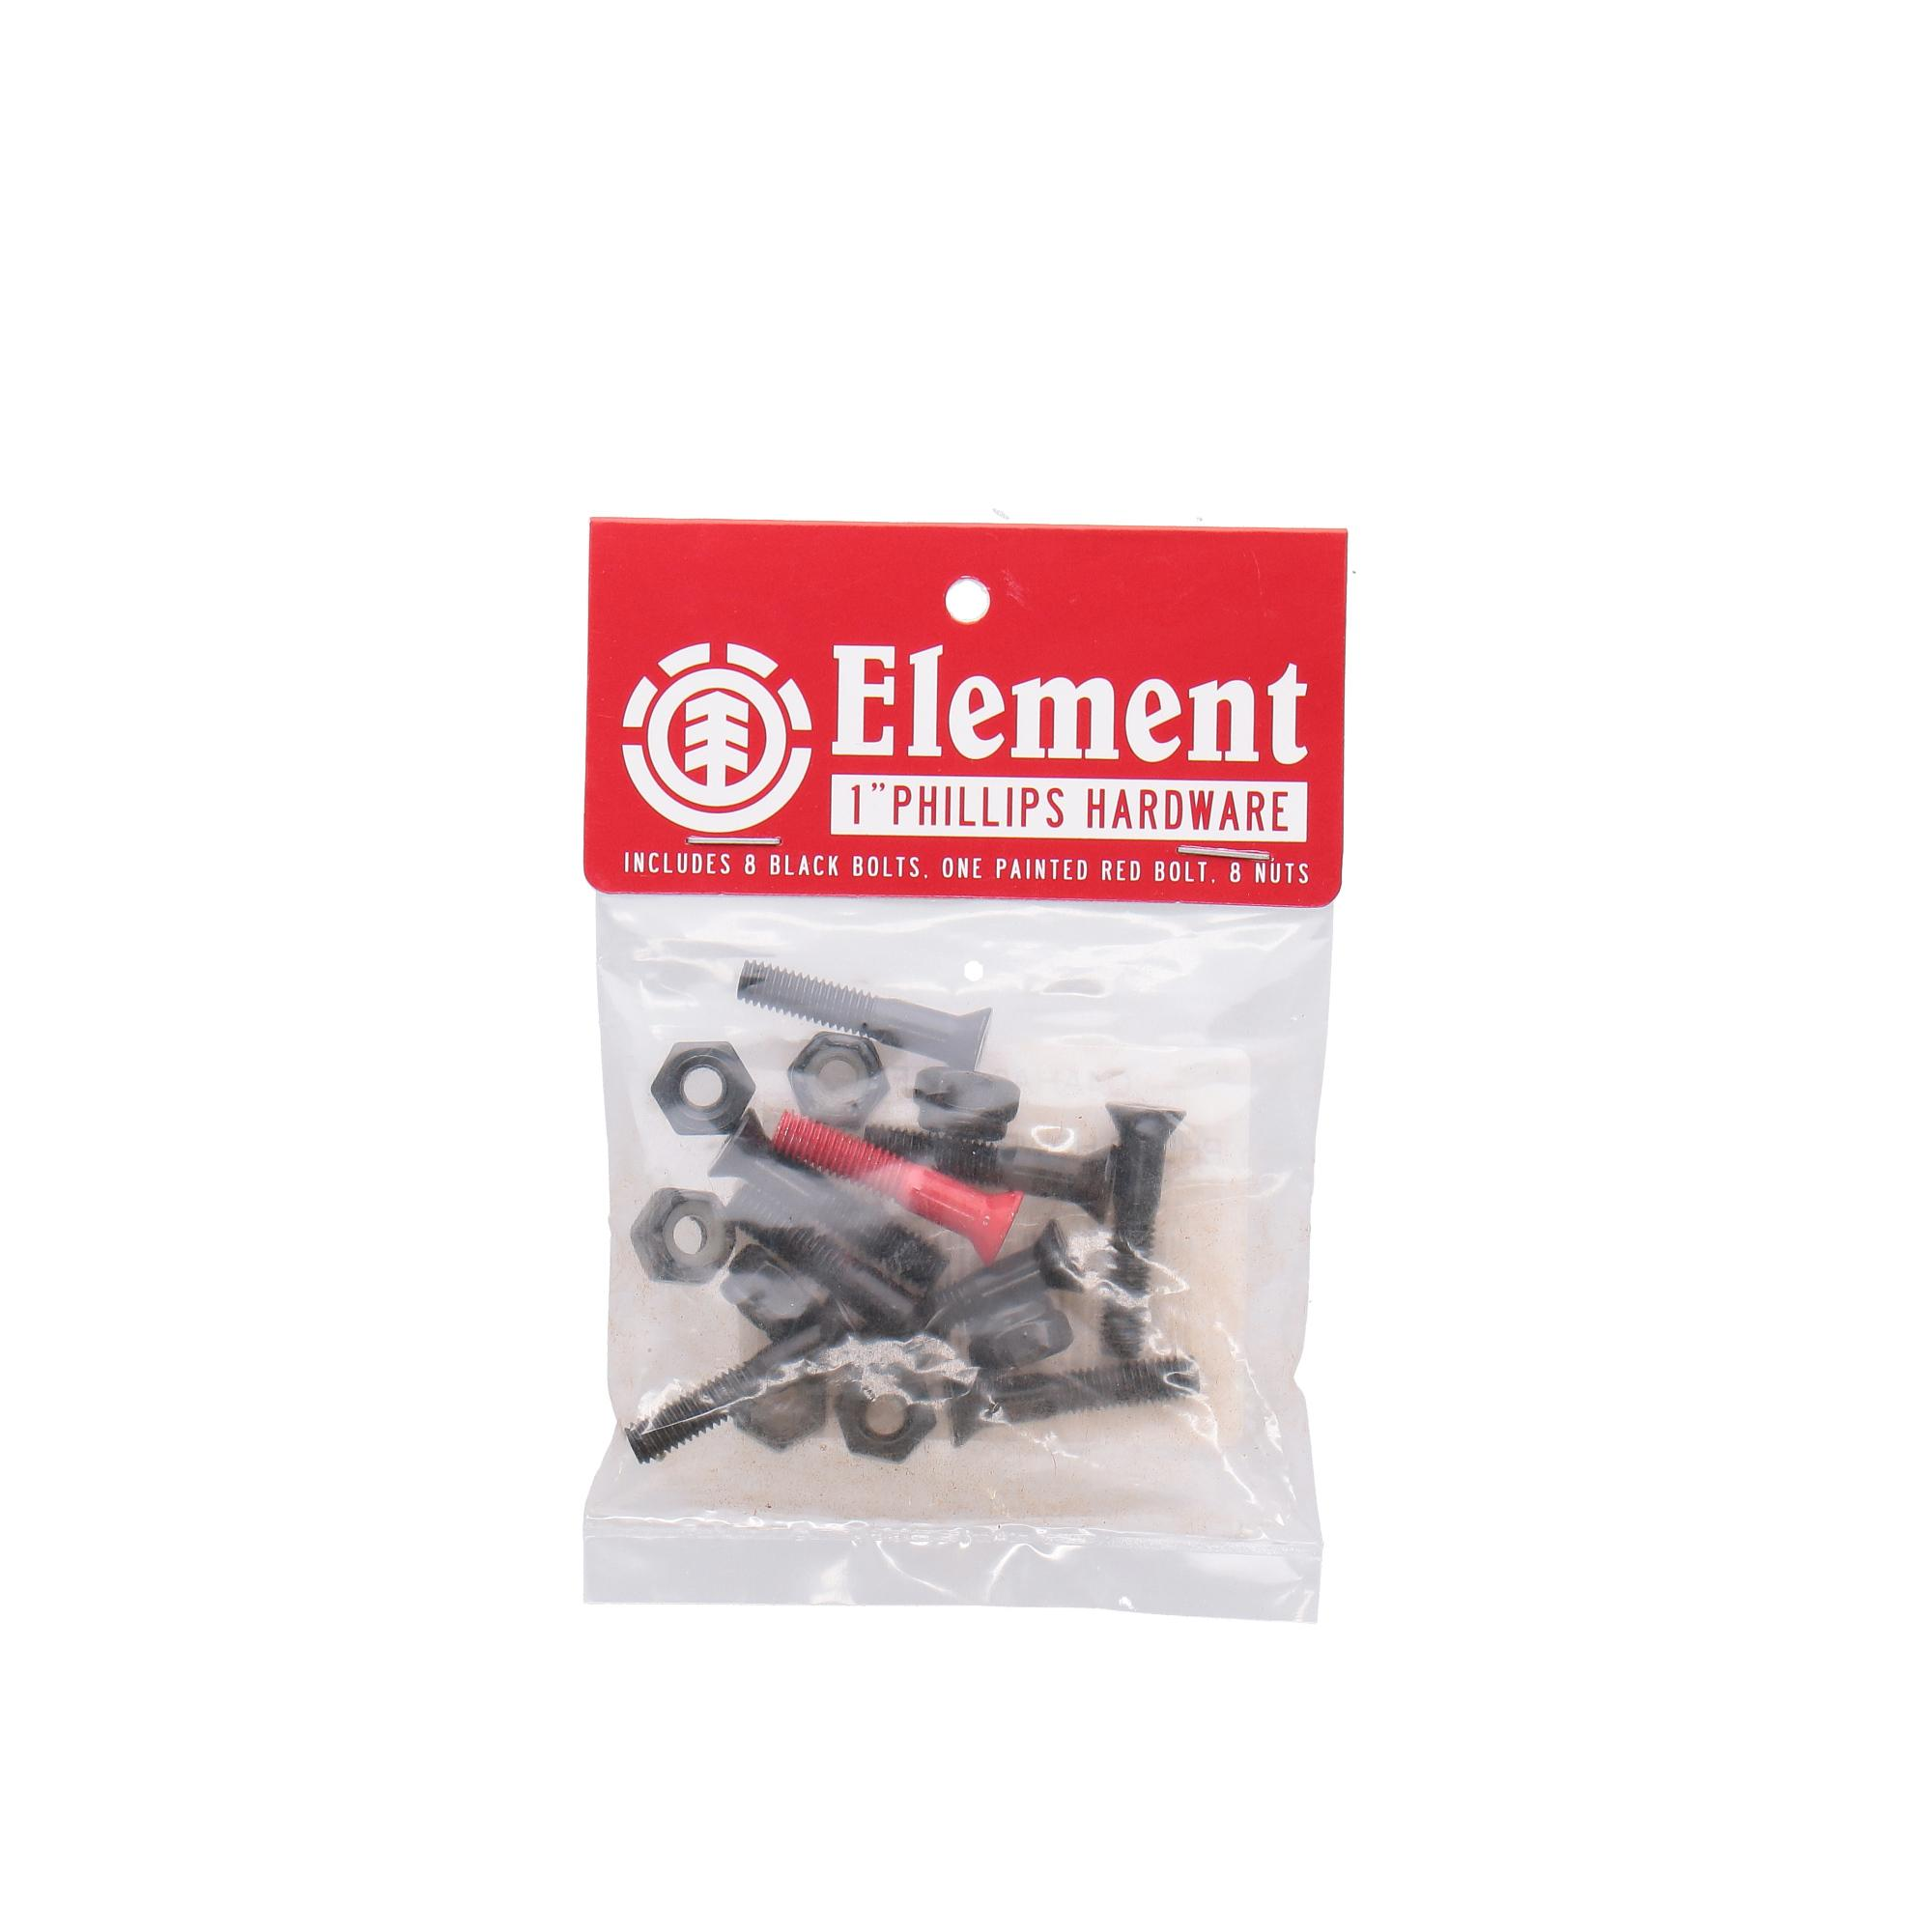 Element Phlips Hdwr ASSORTED